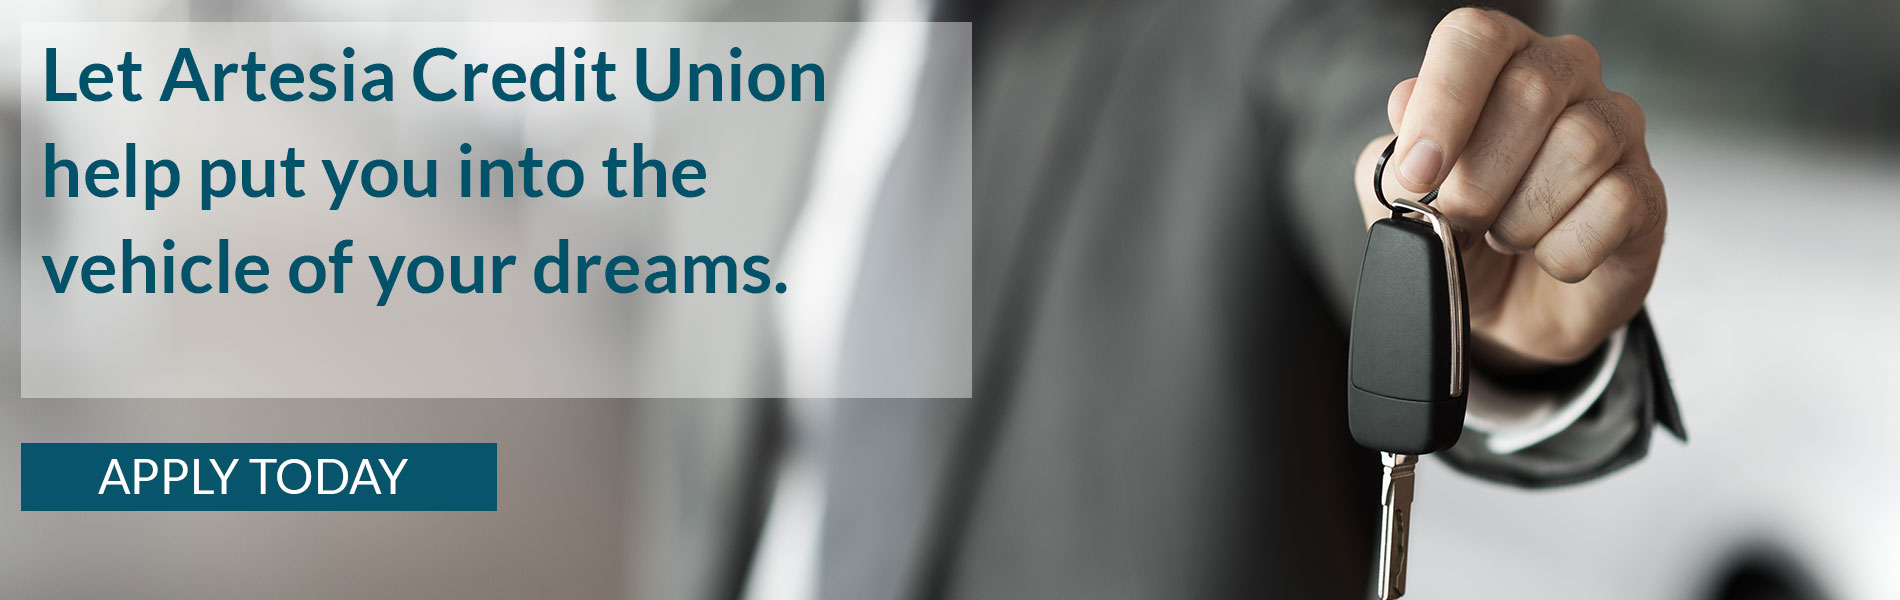 Let Artesia Credit Union help put you into the vehicle of your dreams. Apply today.